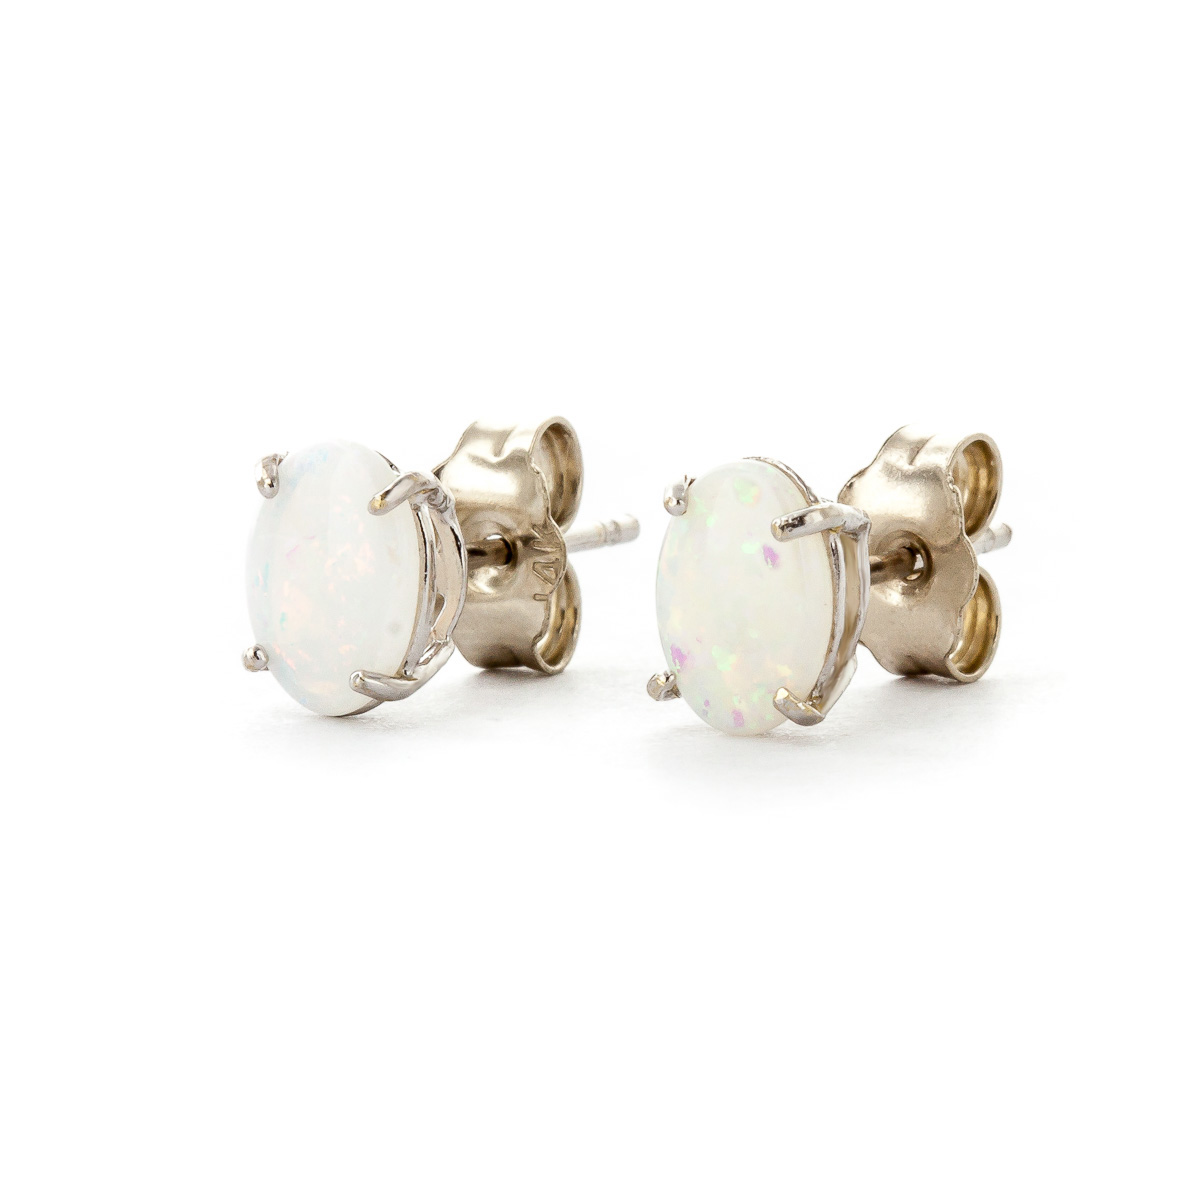 Opal Stud Earrings 0.9ctw in 9ct White Gold